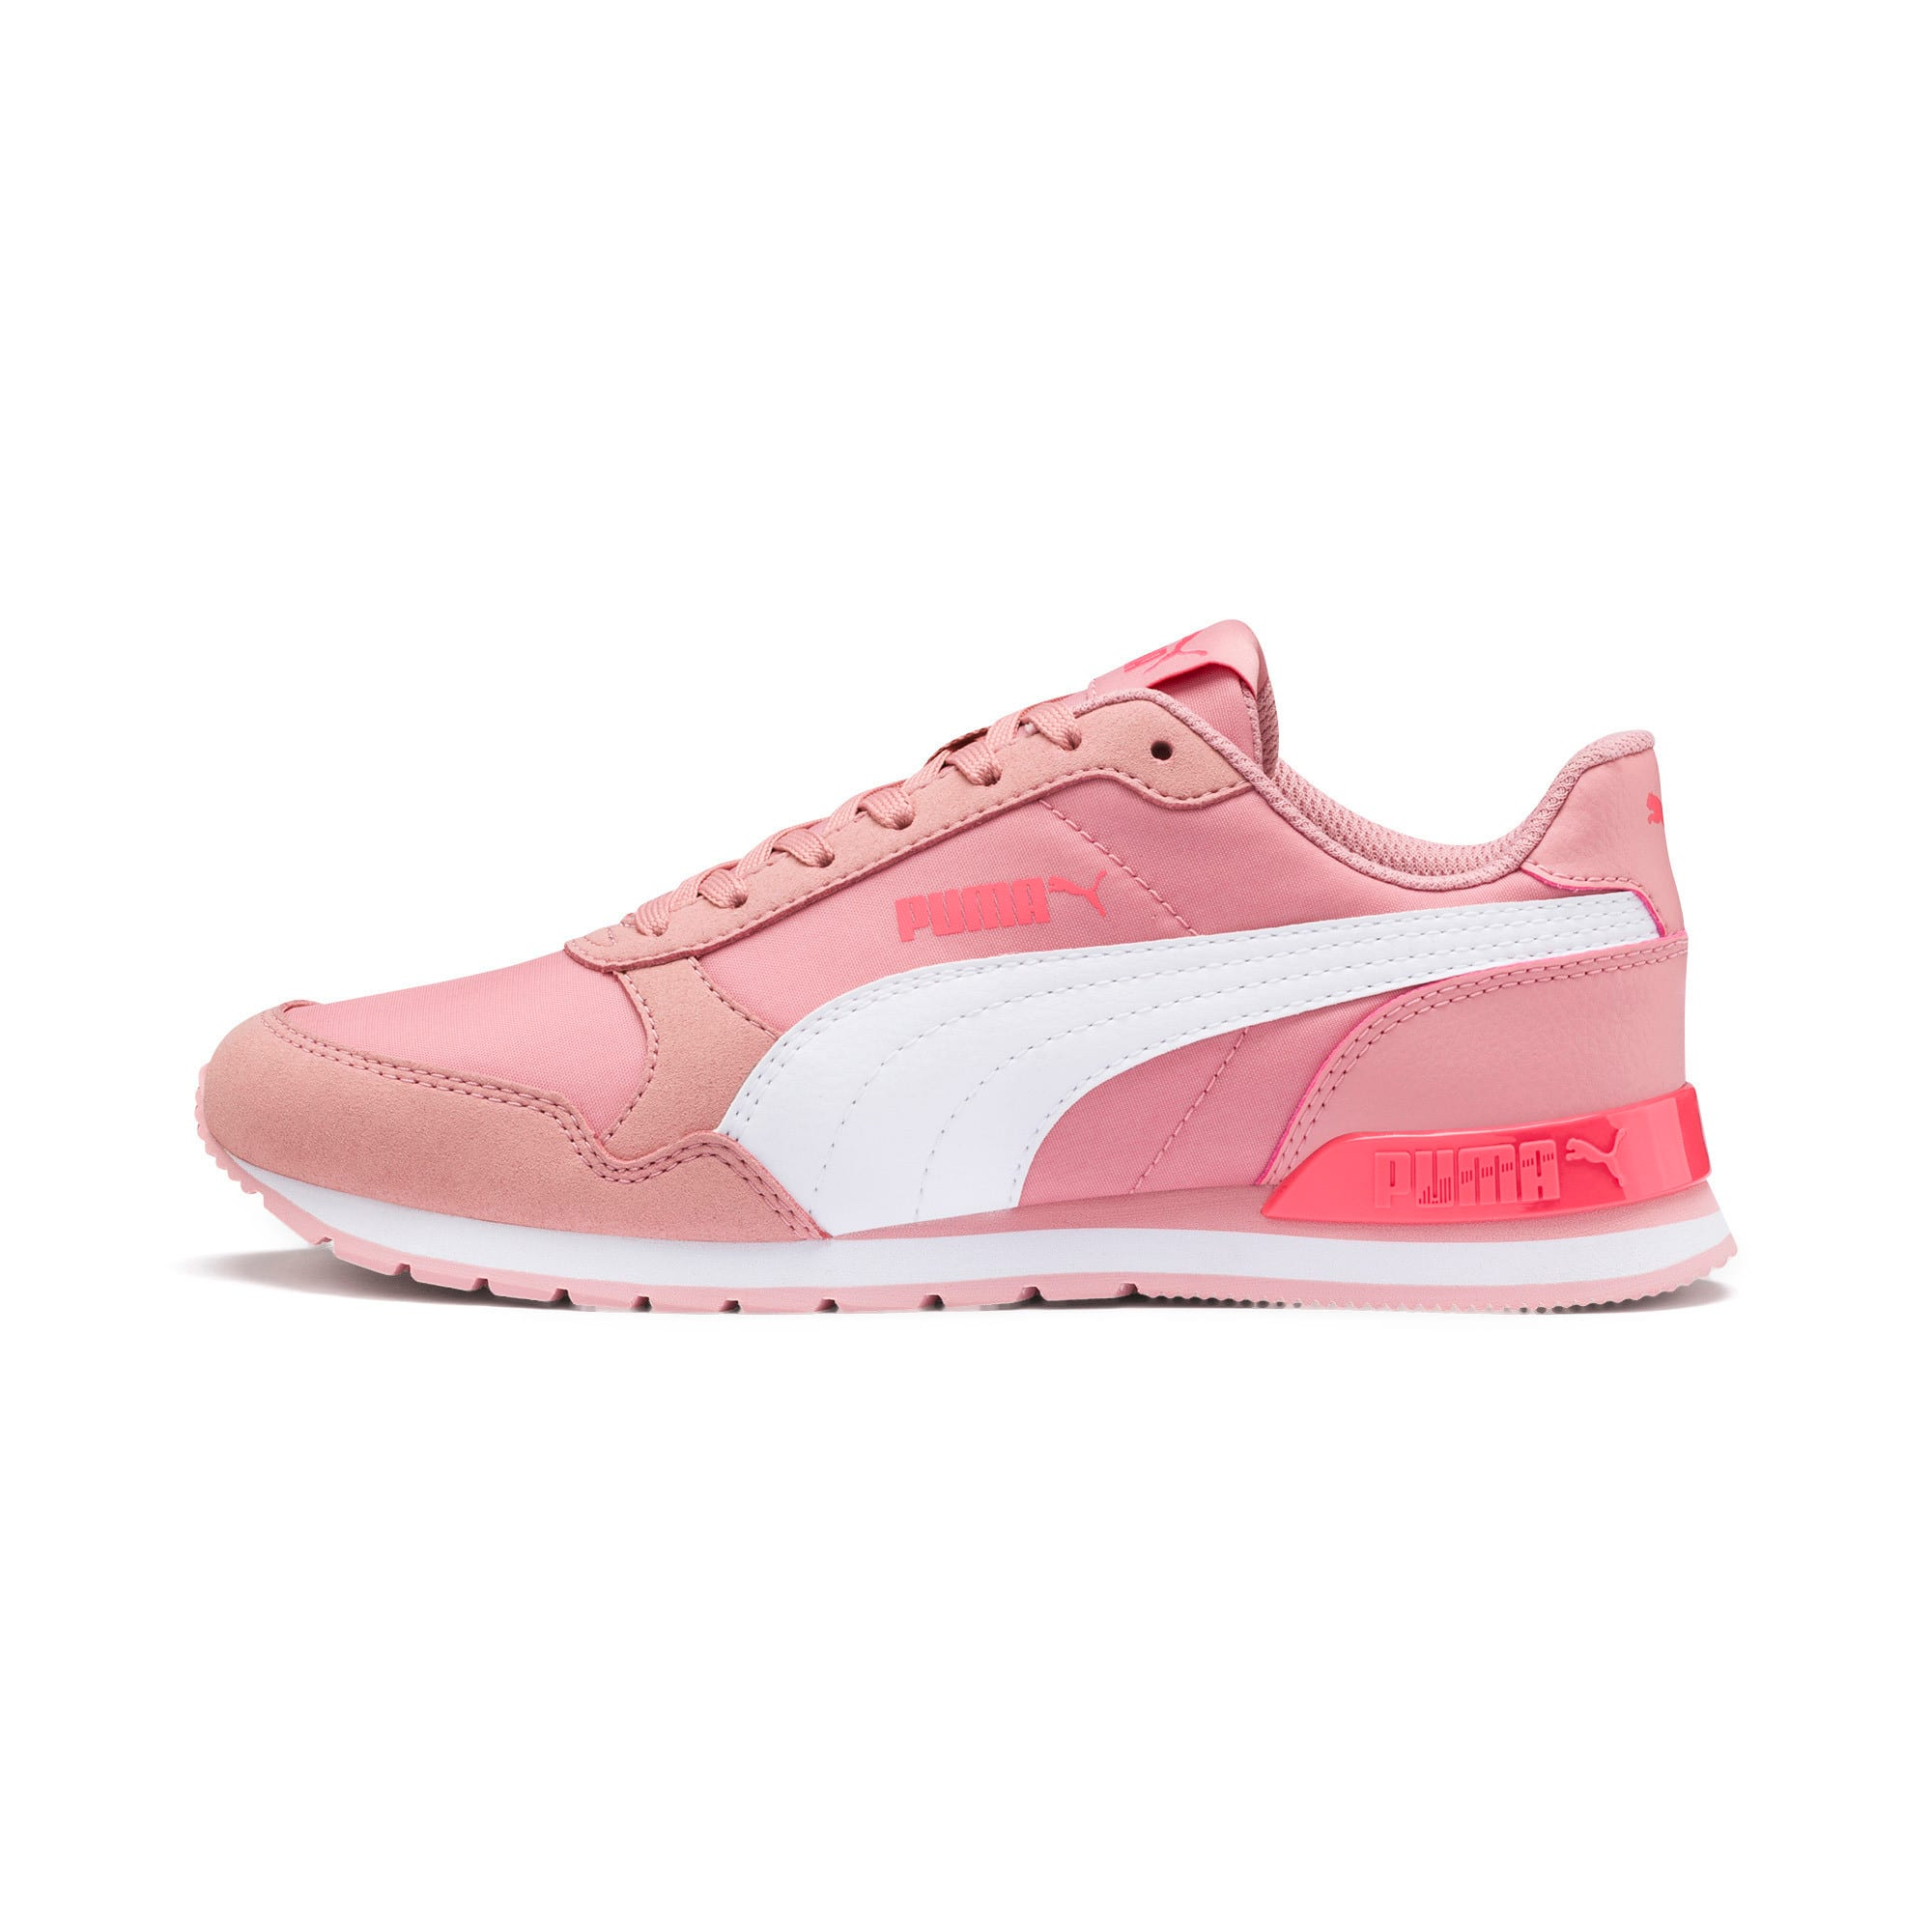 Thumbnail 1 of ST Runner v2 NL Sneakers JR, Bridal Rose-Puma White, medium